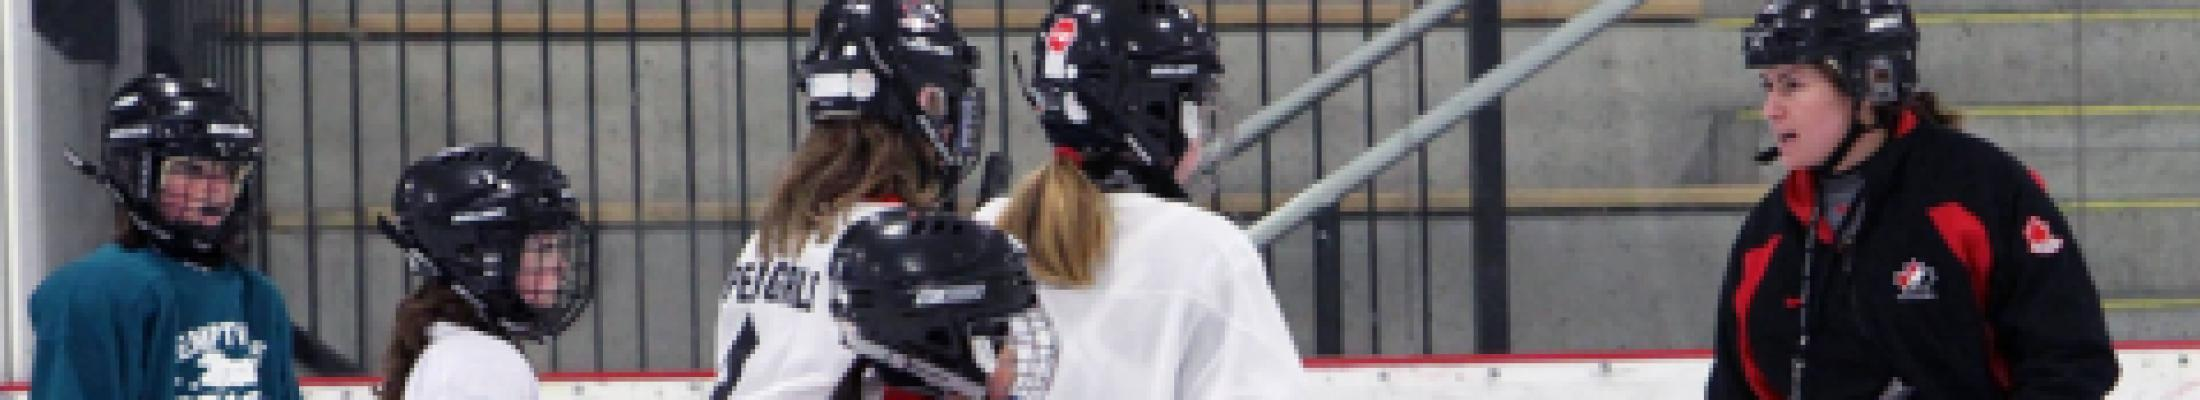 woman coaching girls hockey team